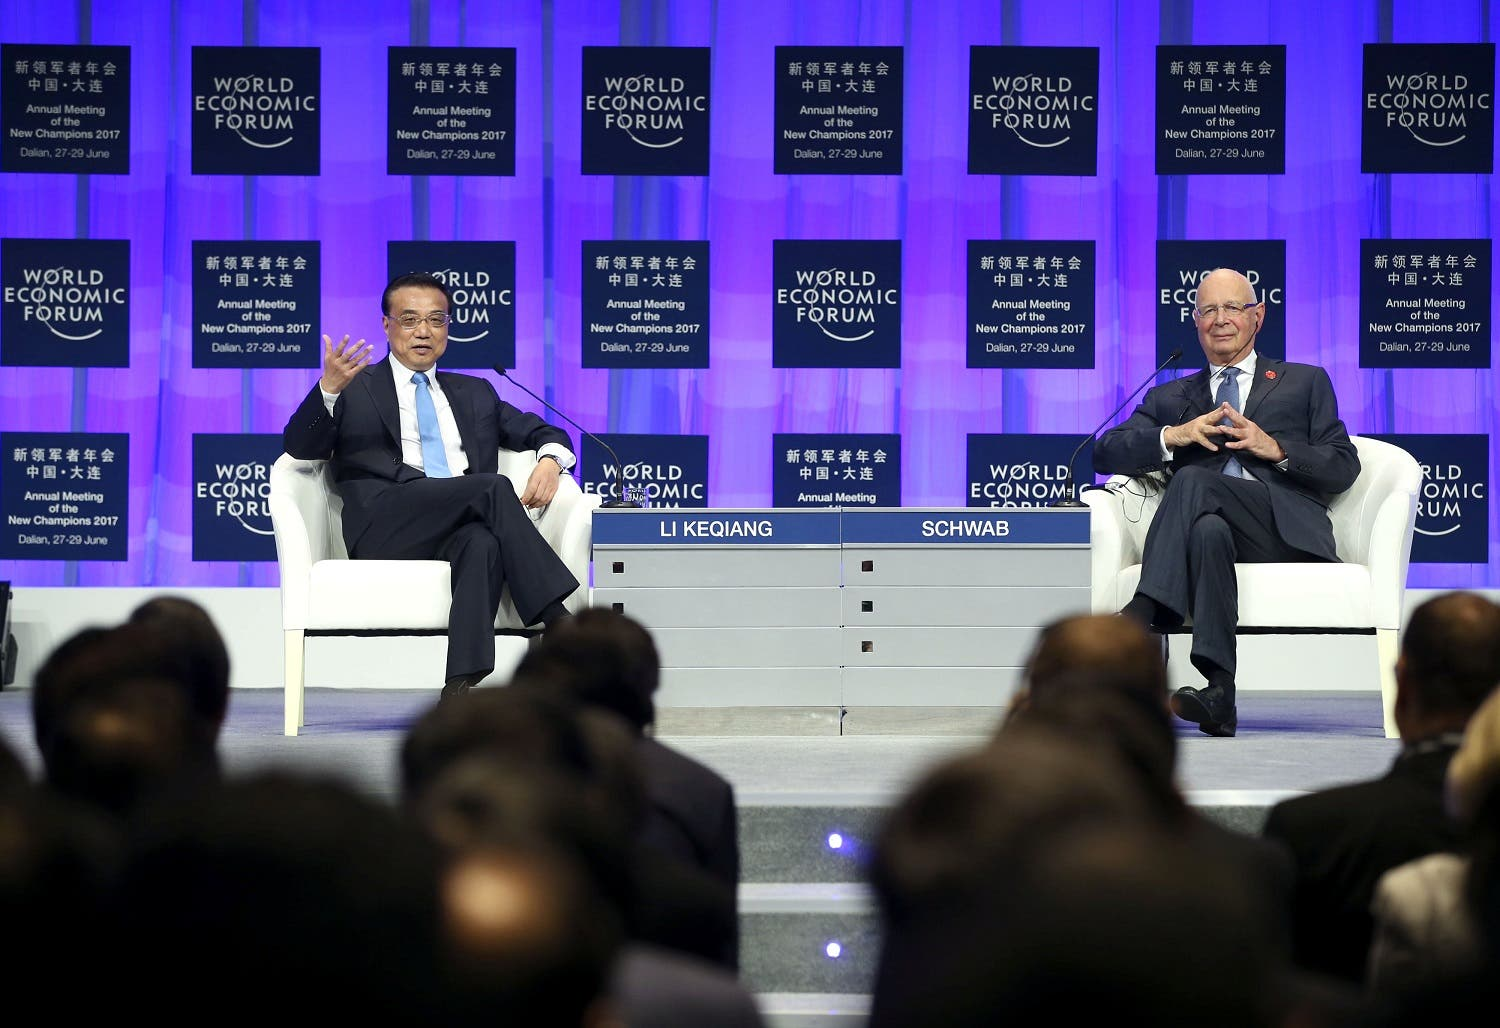 Chinese Premier Li Keqiang (left) and WEF Founder and Executive Chairman Klaus Schwab attend the World Economic Forum in Dalian, China, on June 27, 2017. (Reuters)